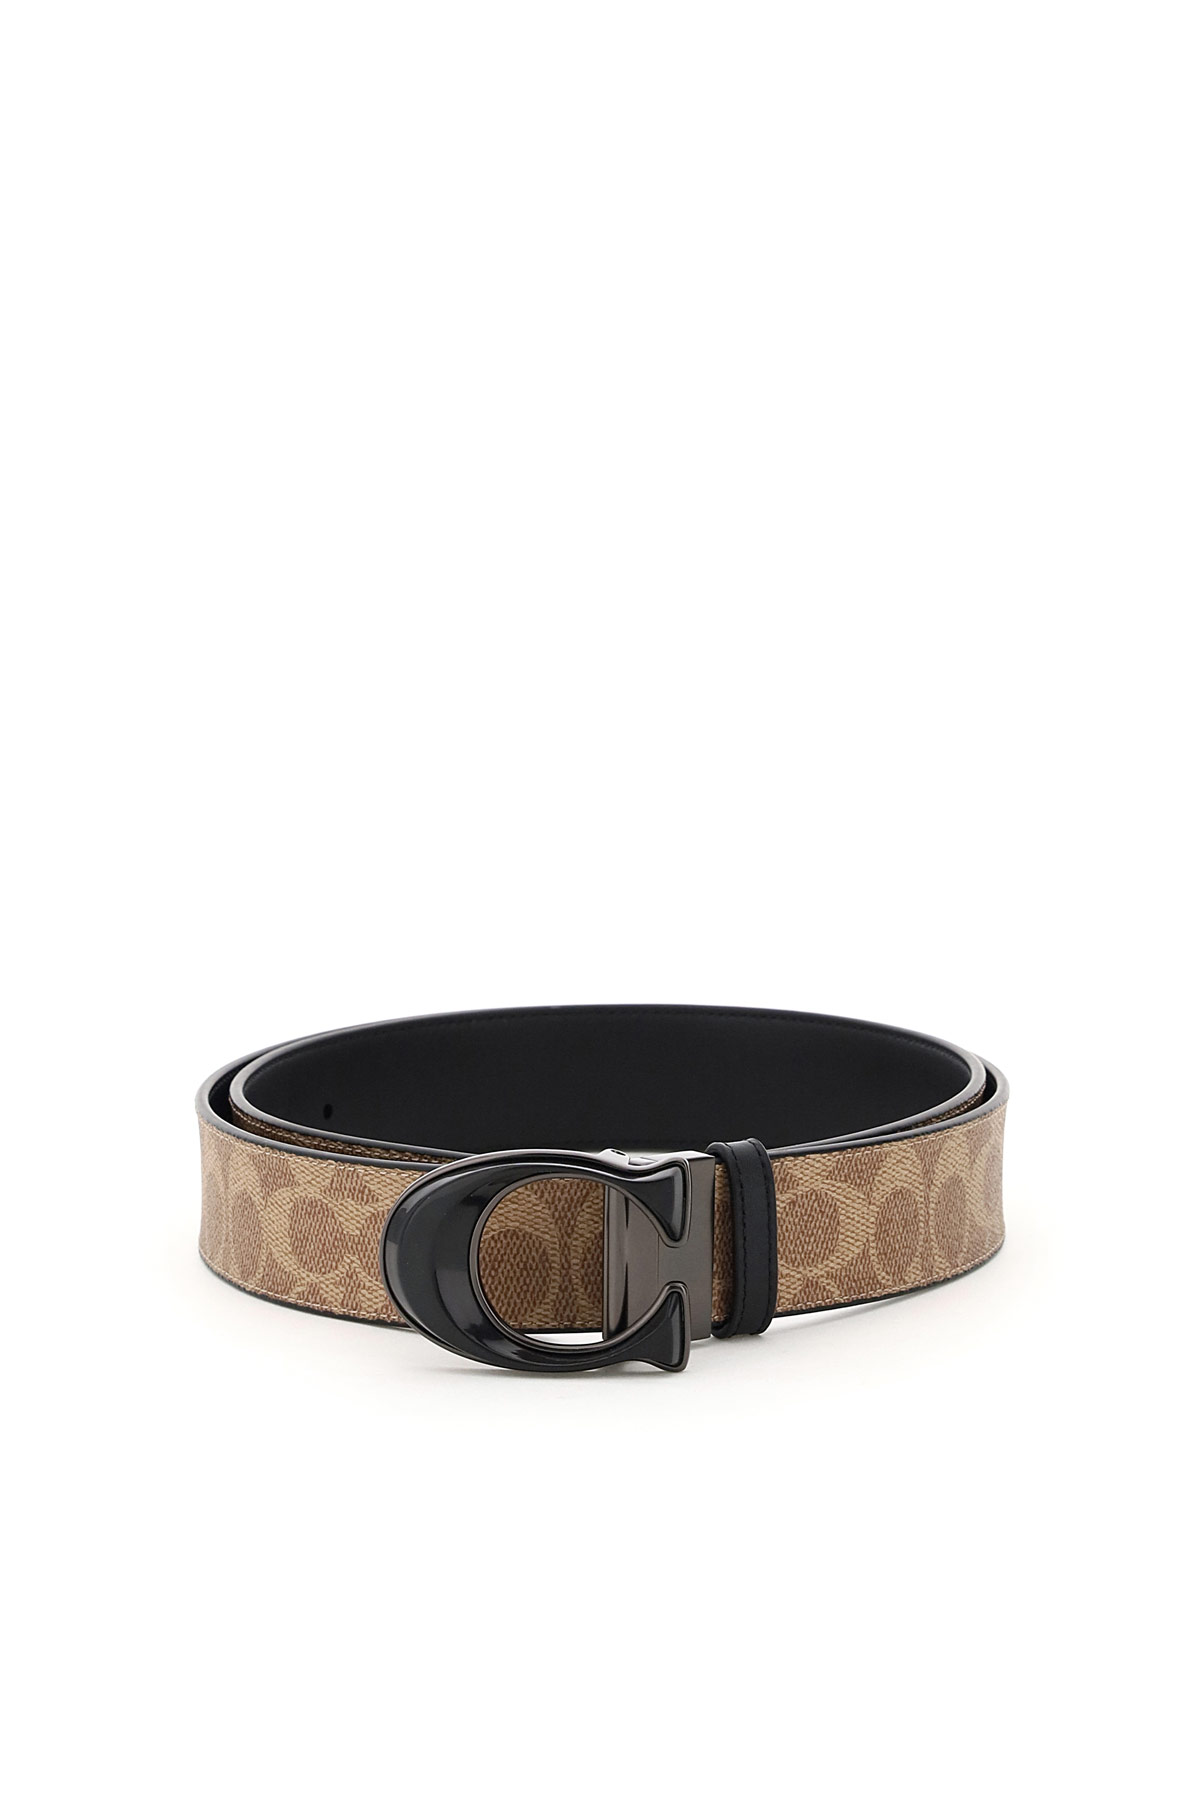 COACH SIGNATURE TAILORED REVERSIBLE BELT 42 Brown, Black Leather